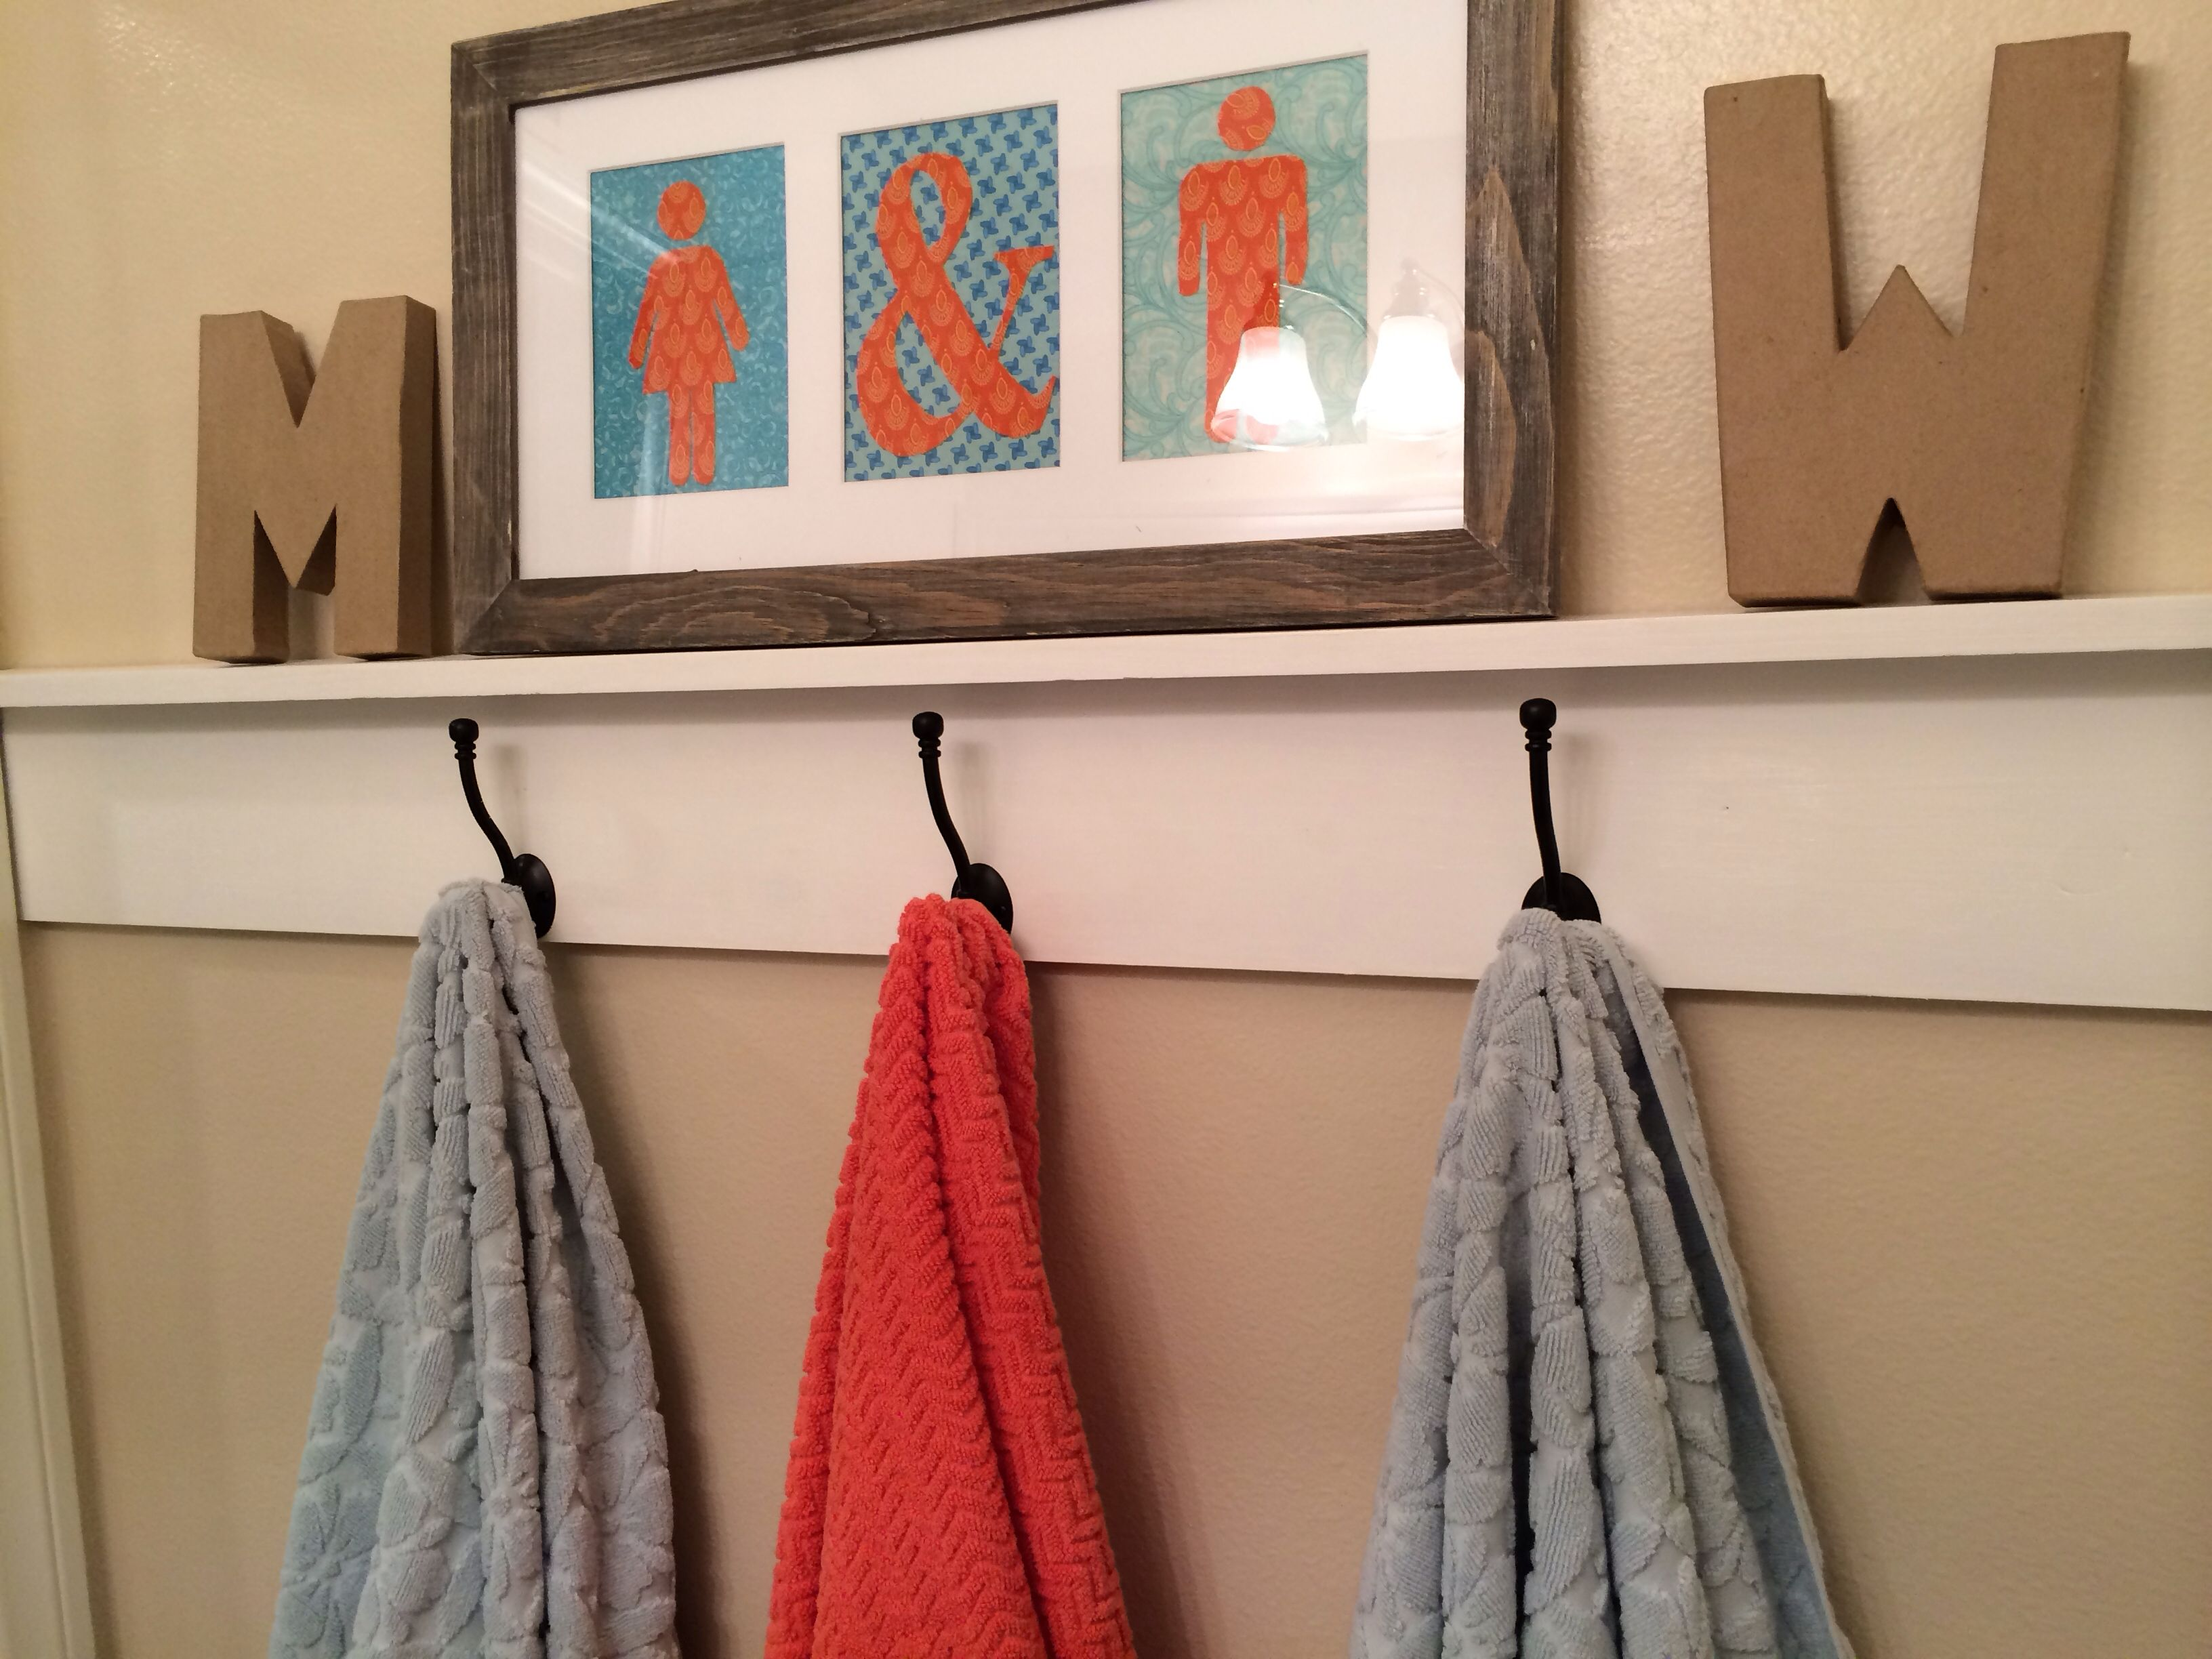 Boy And Girl Bathroom Design Love The Men And Women Symbols For The